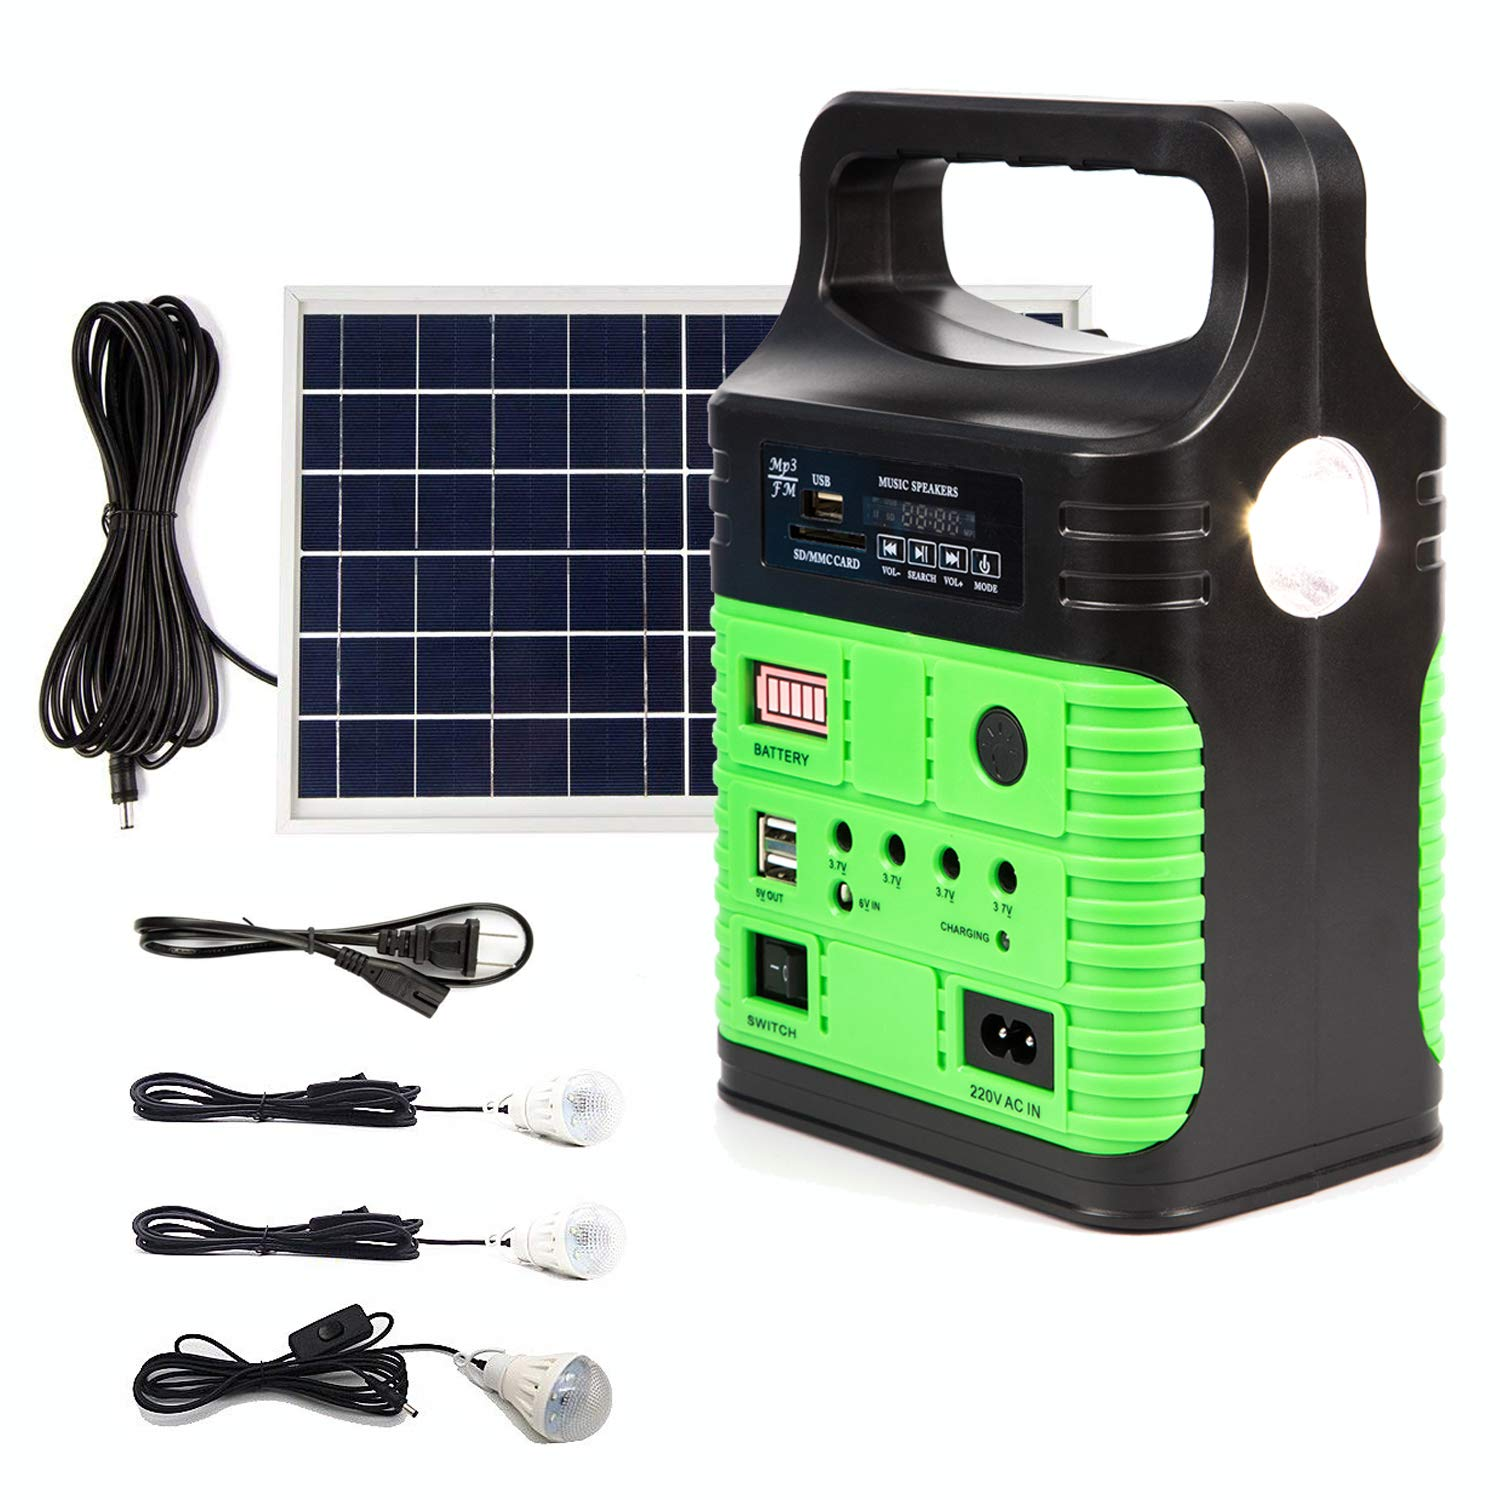 Portable Solar Generator Lighting System - UPEOR Solar Power Generator Kit for Emergency Power Supply,Home & Outdoor Camping,Including MP3&FM Radio,Solar Panel,3 Sets LED Lights(Green) by UPEOR